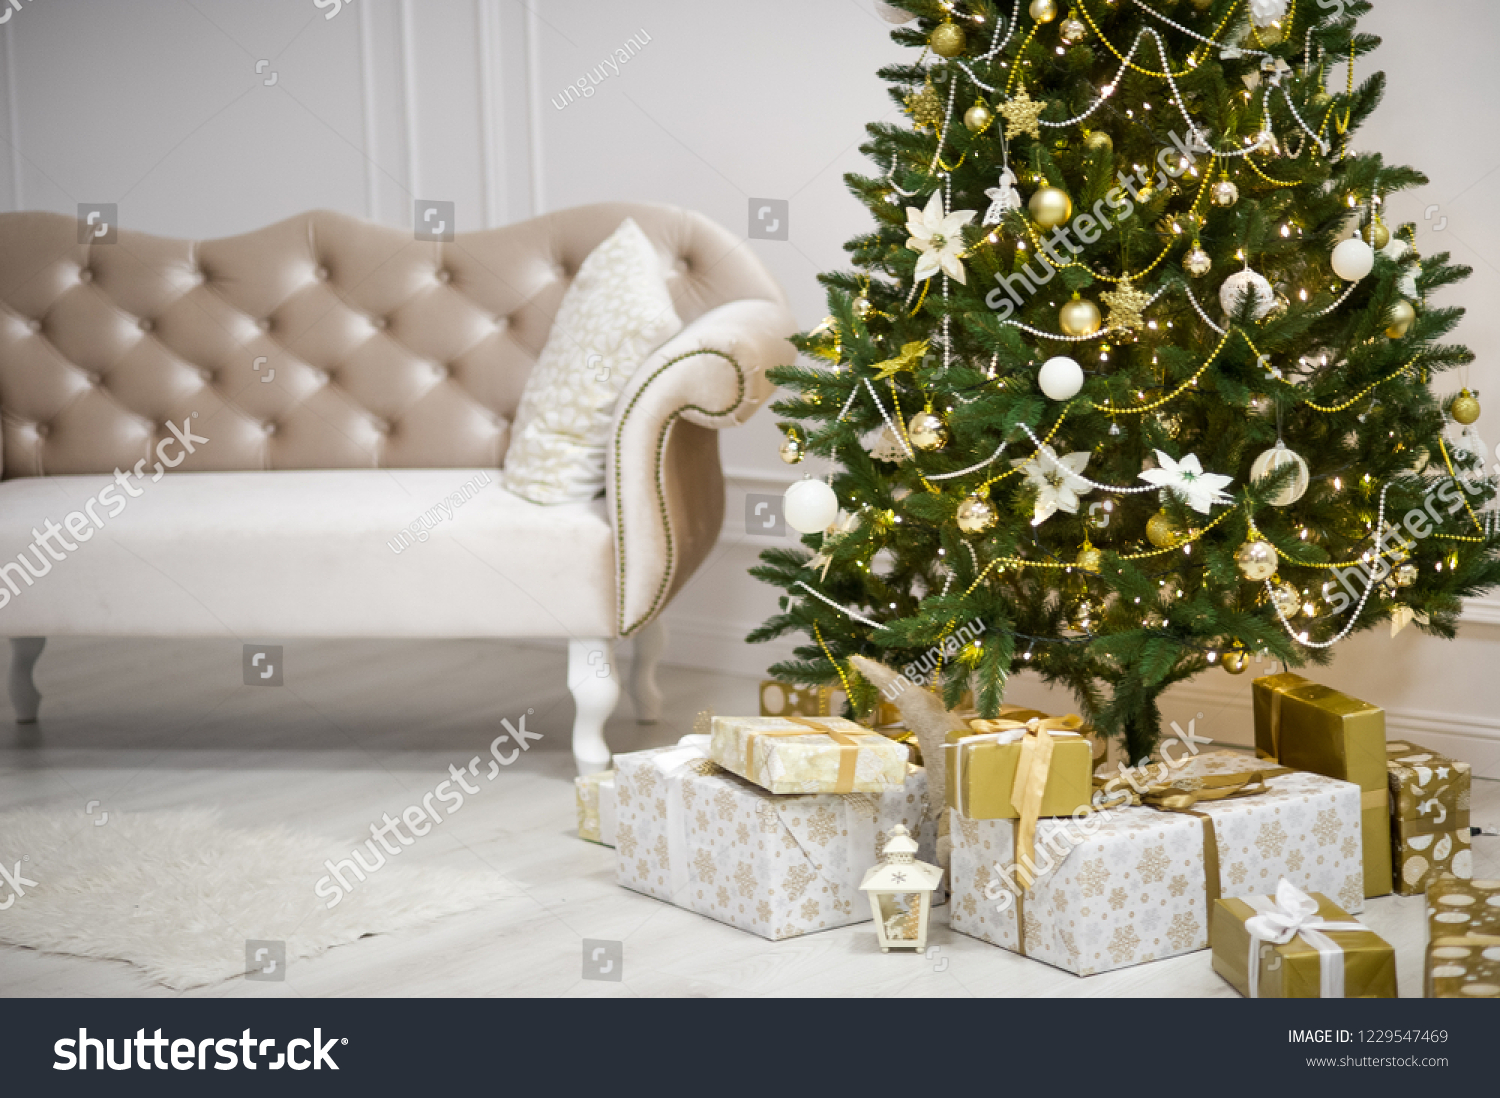 Elegant Christmas Tree Decorated Glistening Glass